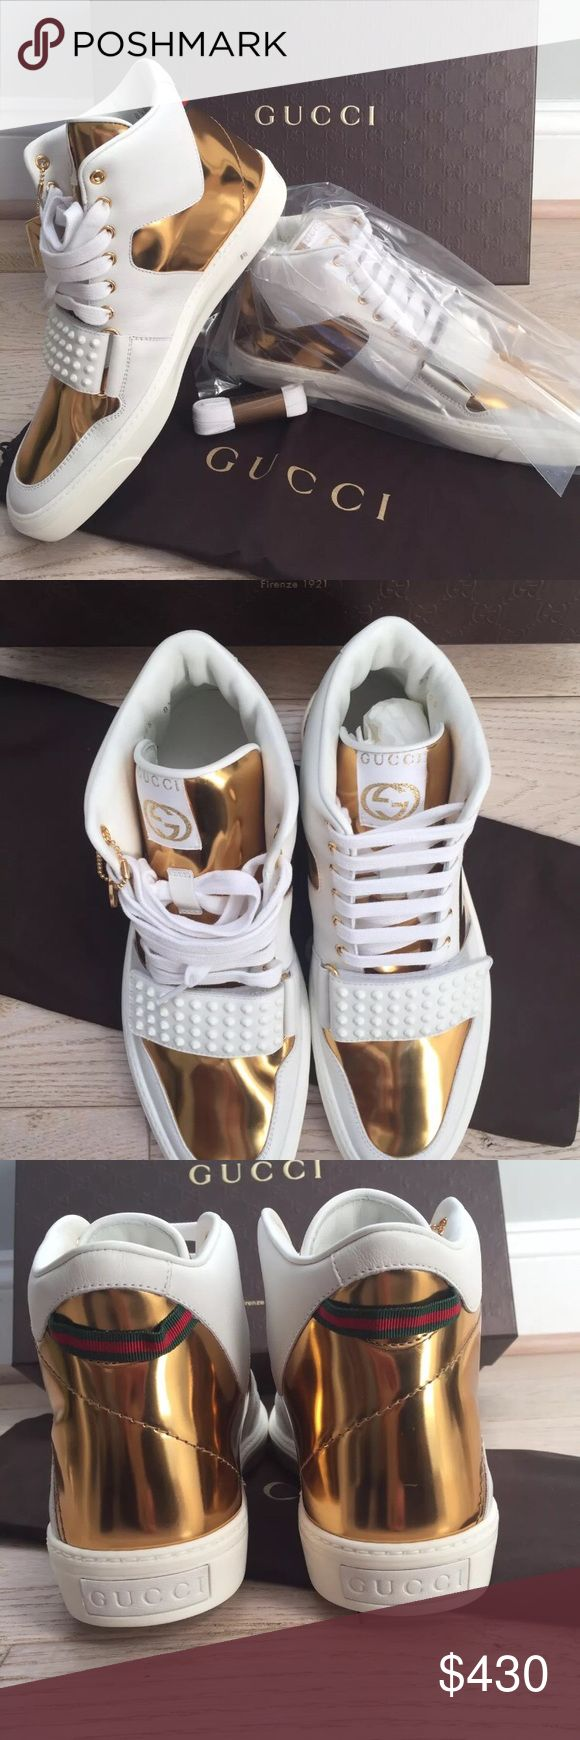 Authentic Gucci High Tops All sizes available, email me at luxuryxdeals@gmail.com if you're interested. Shoes